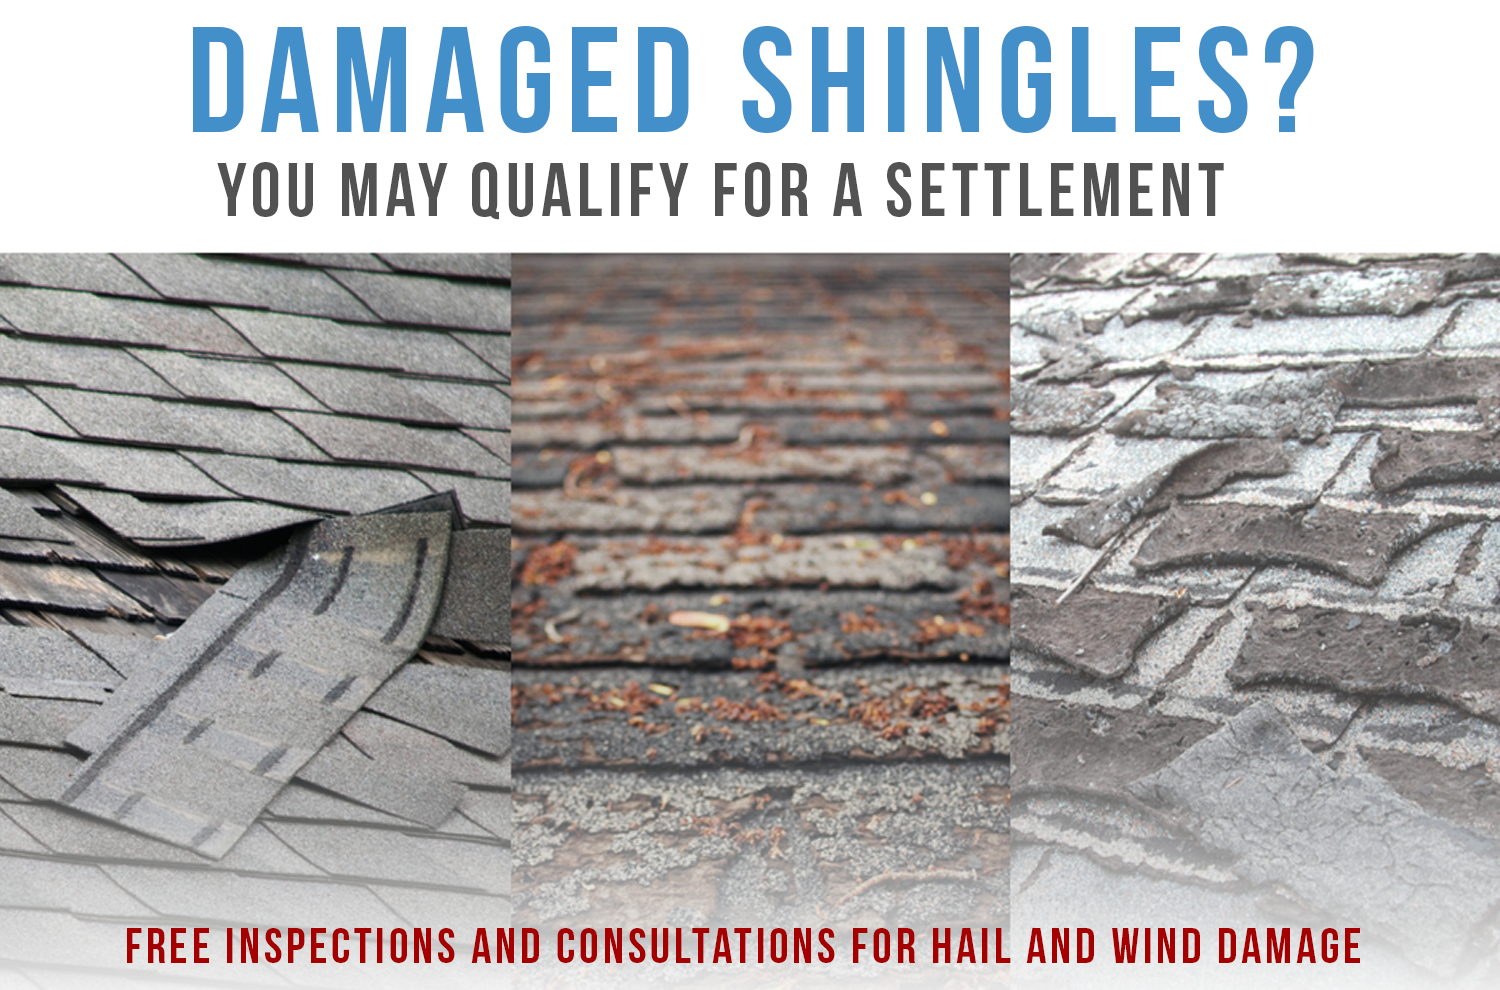 Wind damage to your roof, siding, fences? You may qualify for a settlement and a new roof!